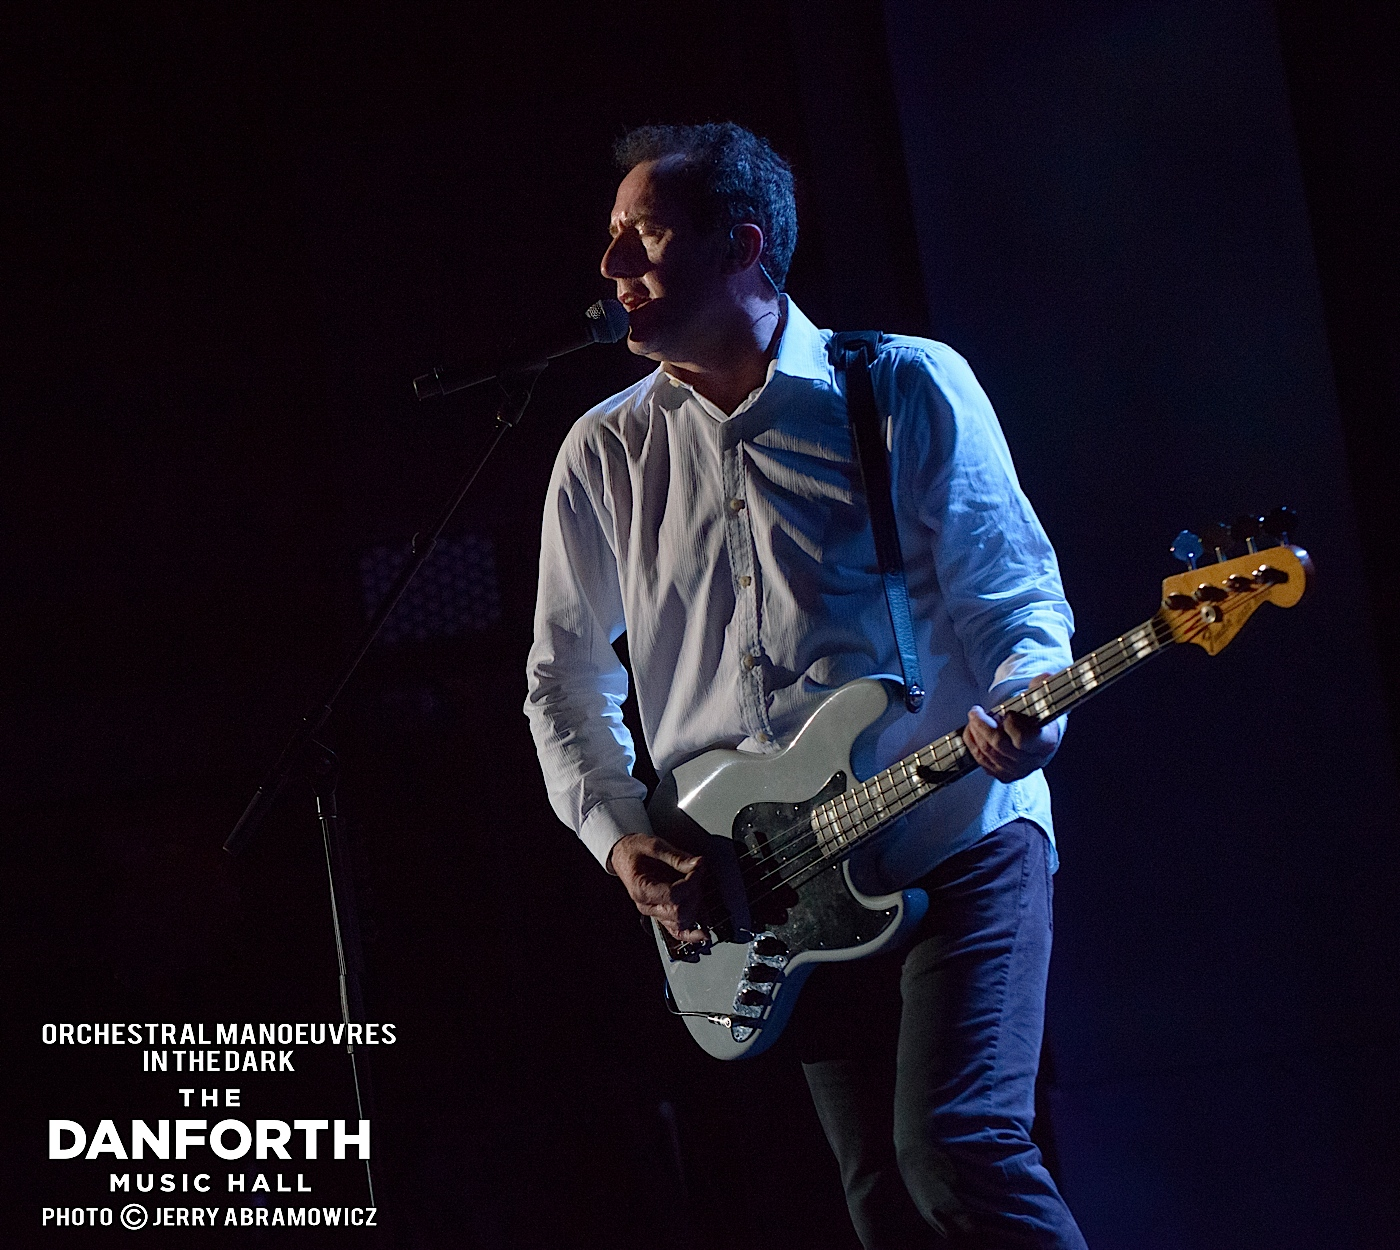 20130711 Orchestral Manoeuvres in the Dark at The Danforth Music Hall 0242